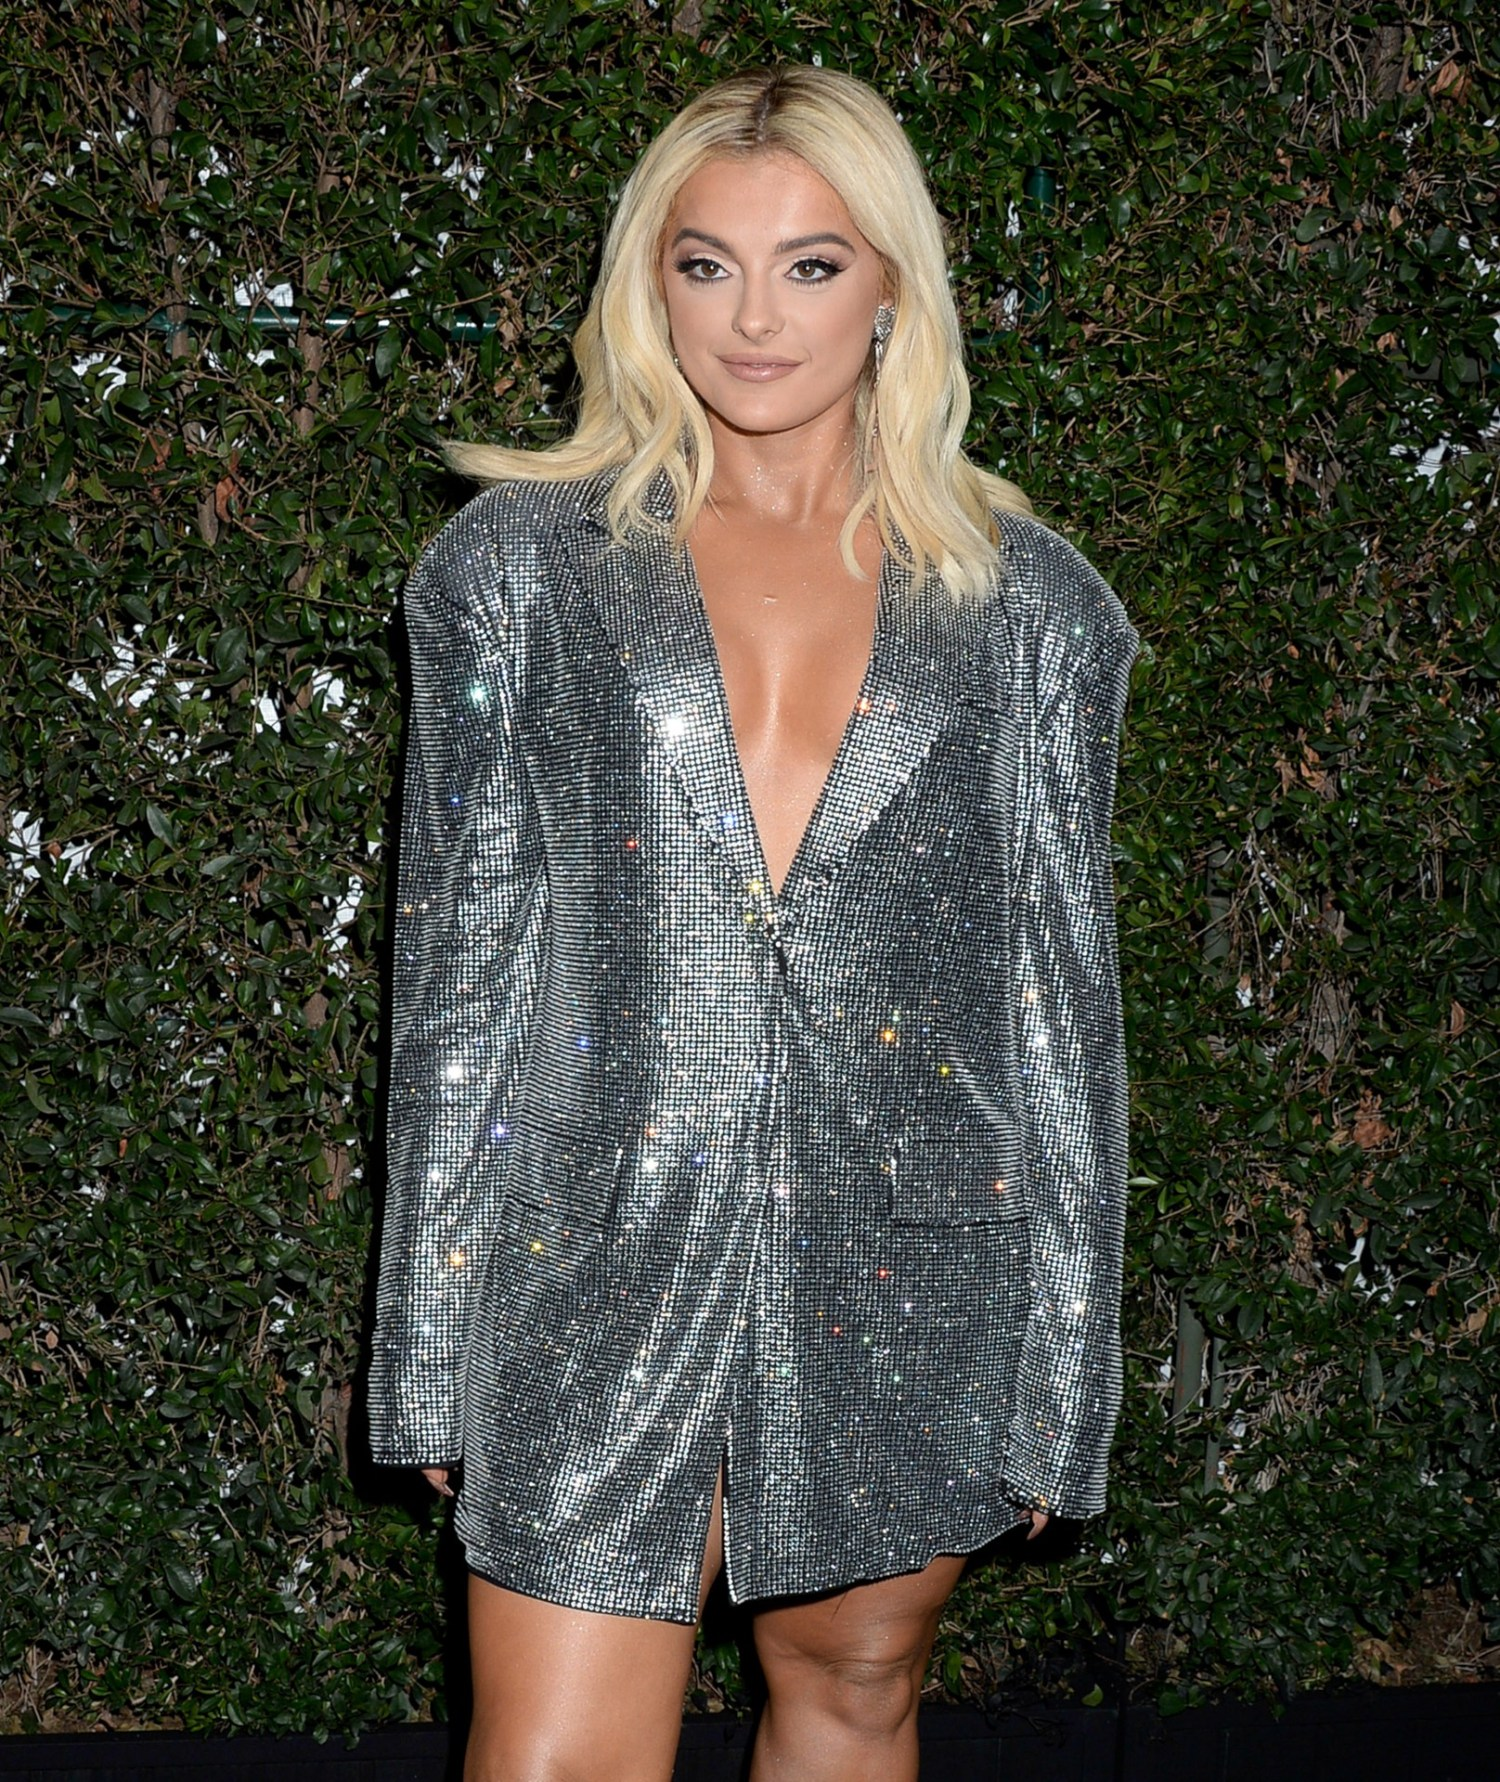 """Bebe Rexha - Sexy Braless Cleavage at Spotify """"Best New Artist"""" Party in Los Angeles - Hot ..."""